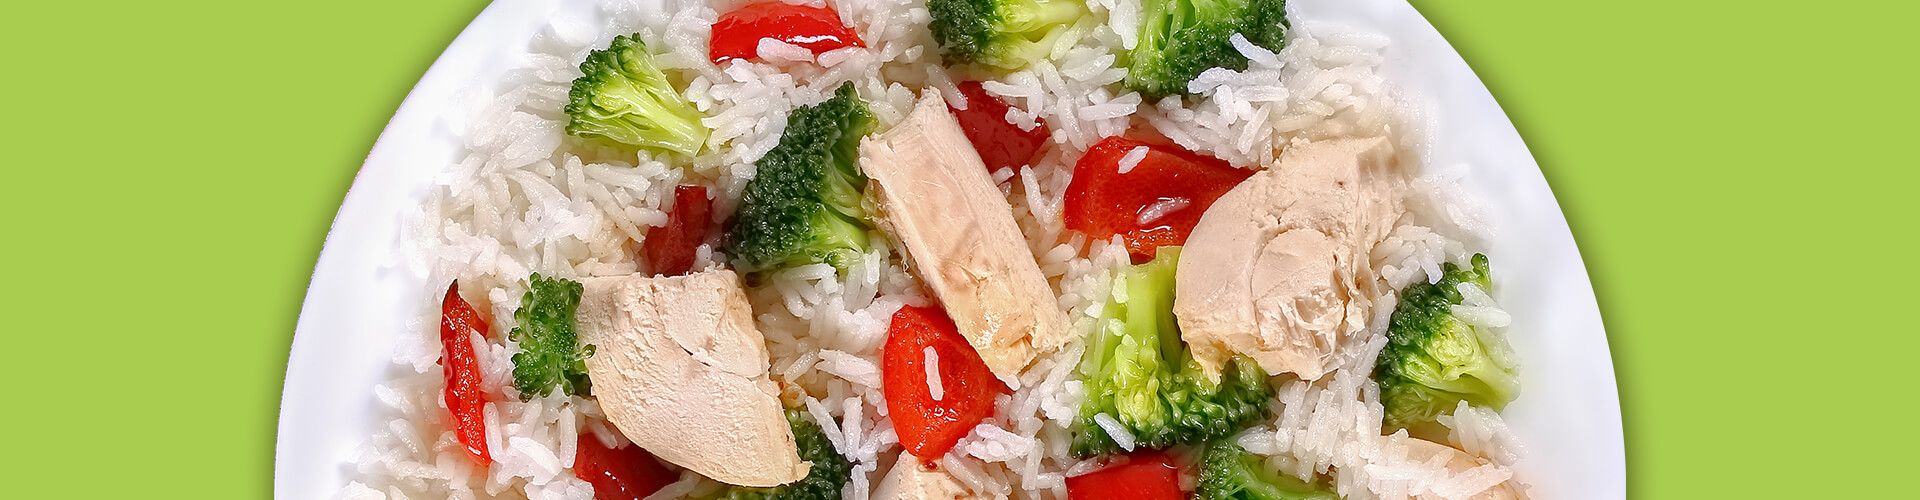 Strips of chicken, tomatoes and broccoli over white rice